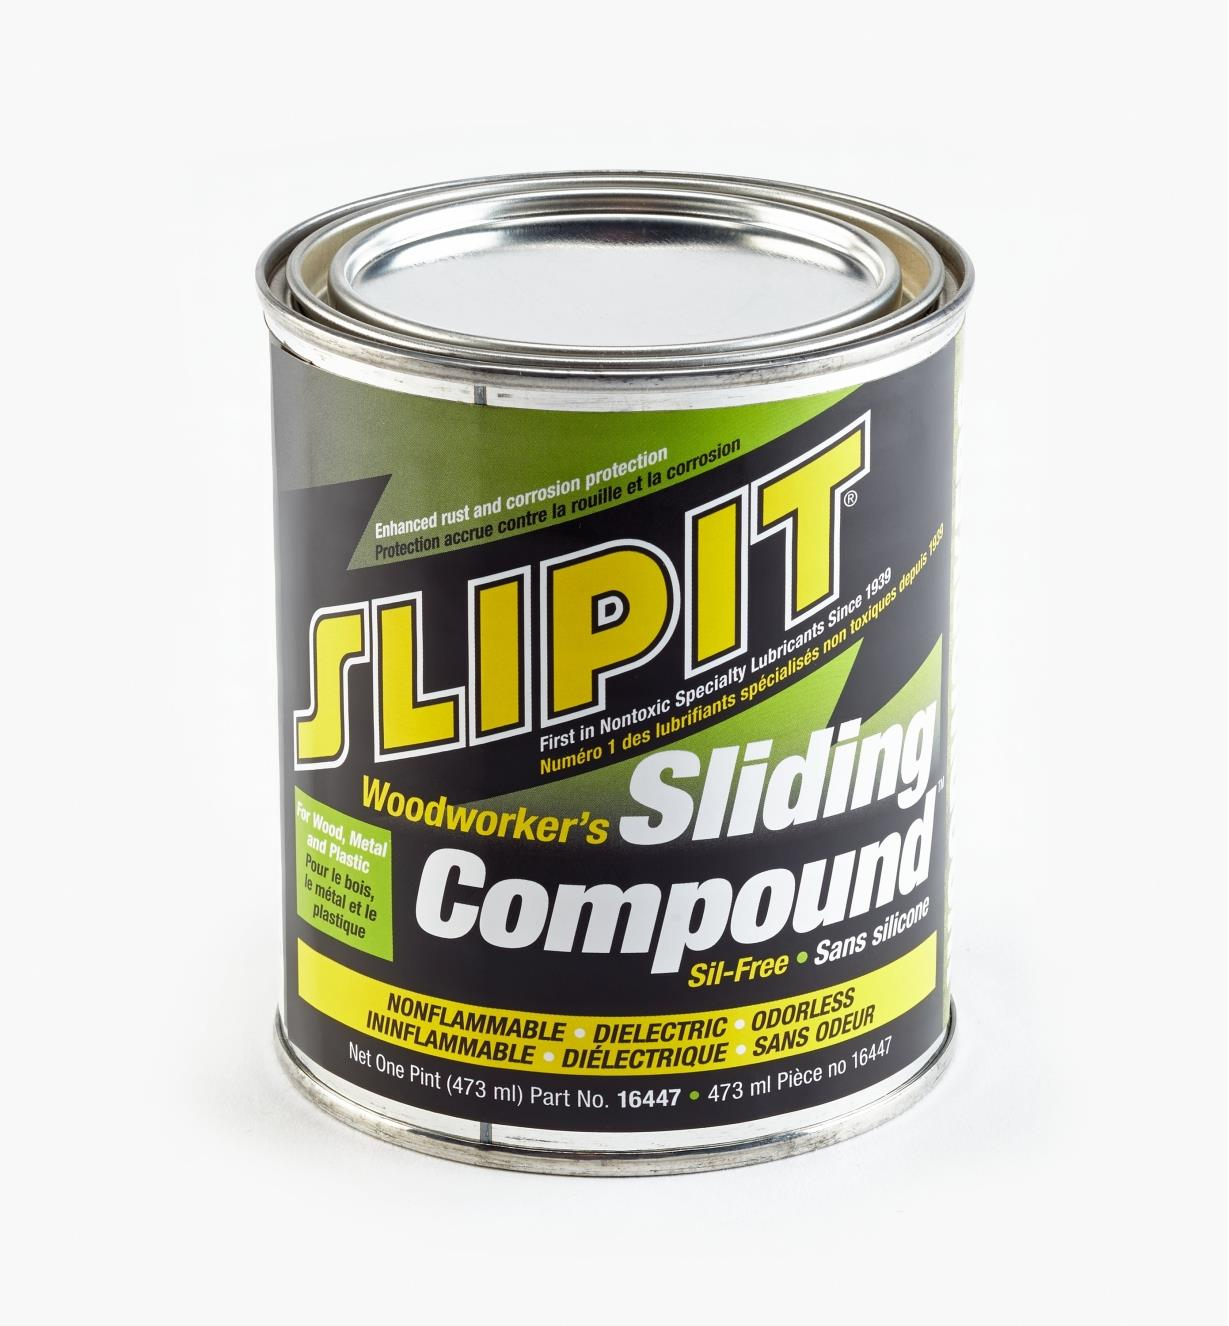 53Z3008 - Slipit, 1 pint/473ml